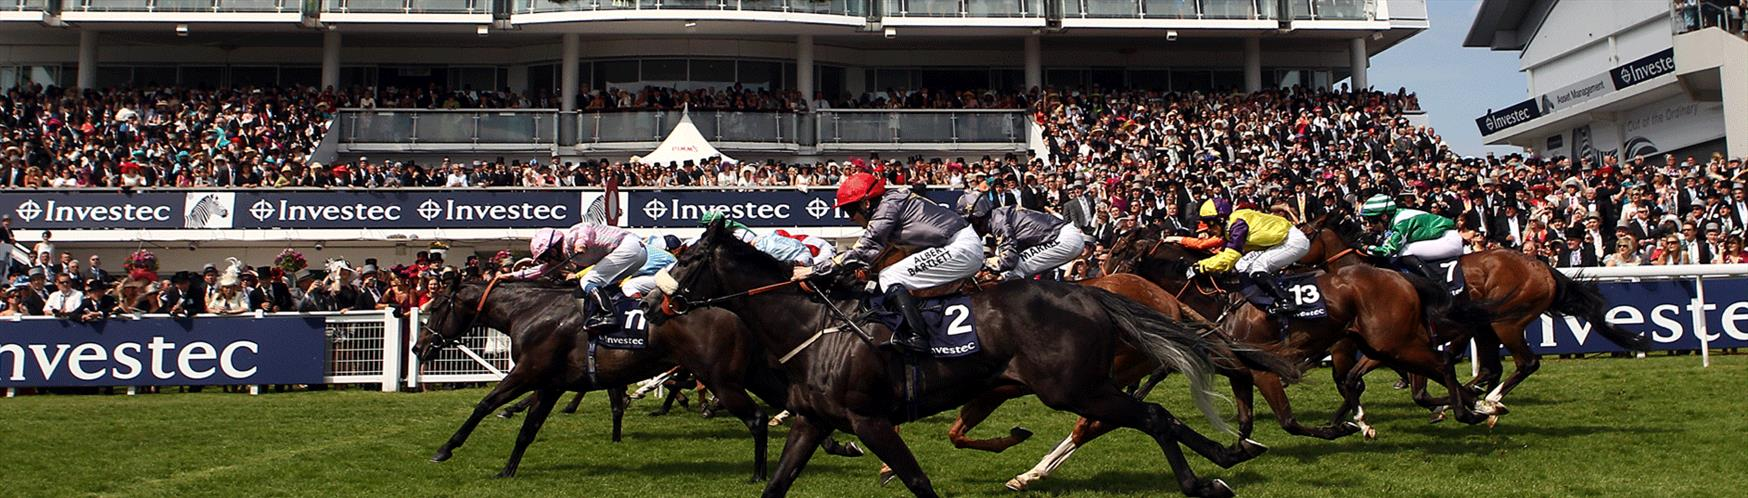 World-famous Investec Derby